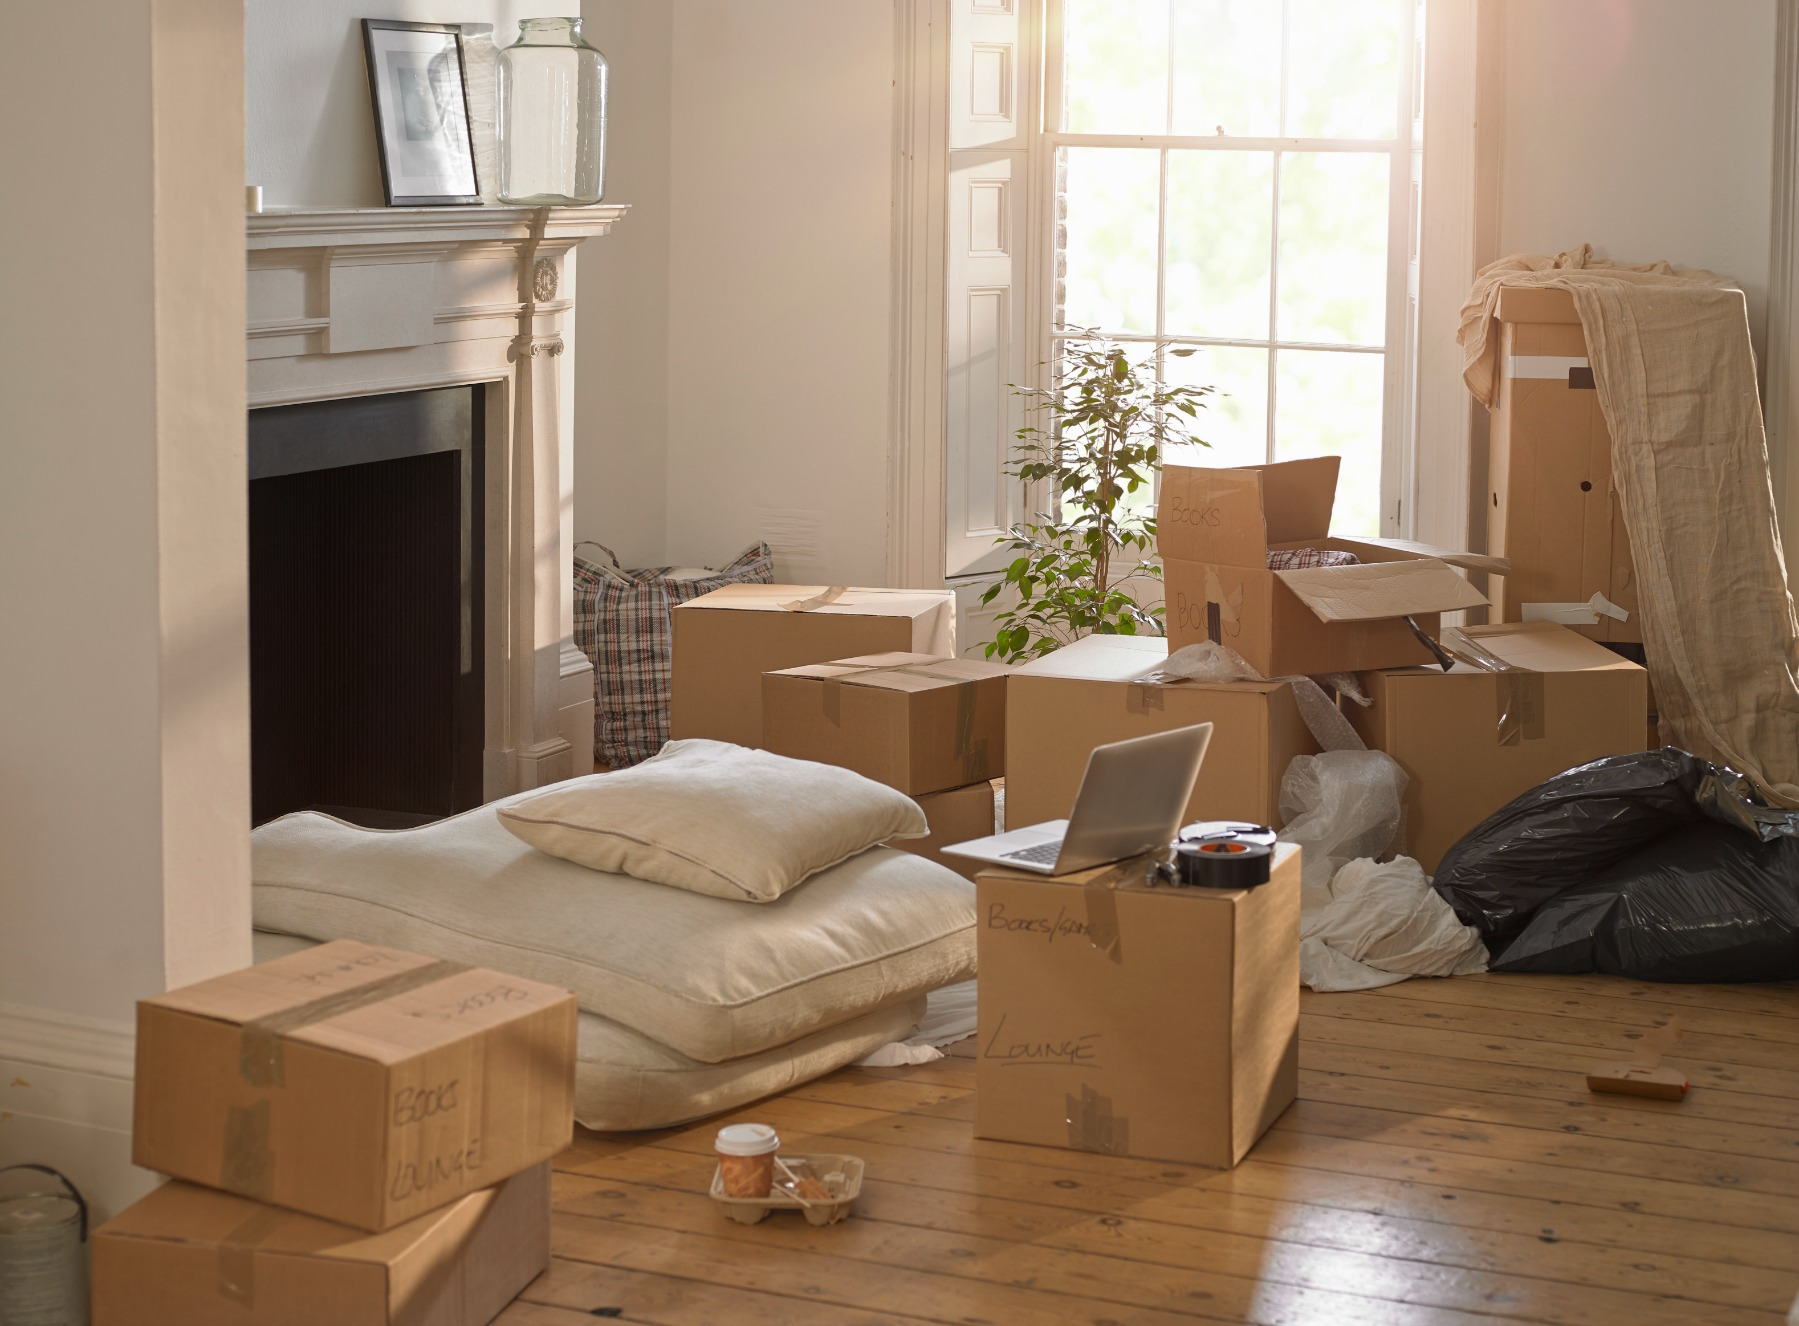 Be packed up before the moving truck arrives